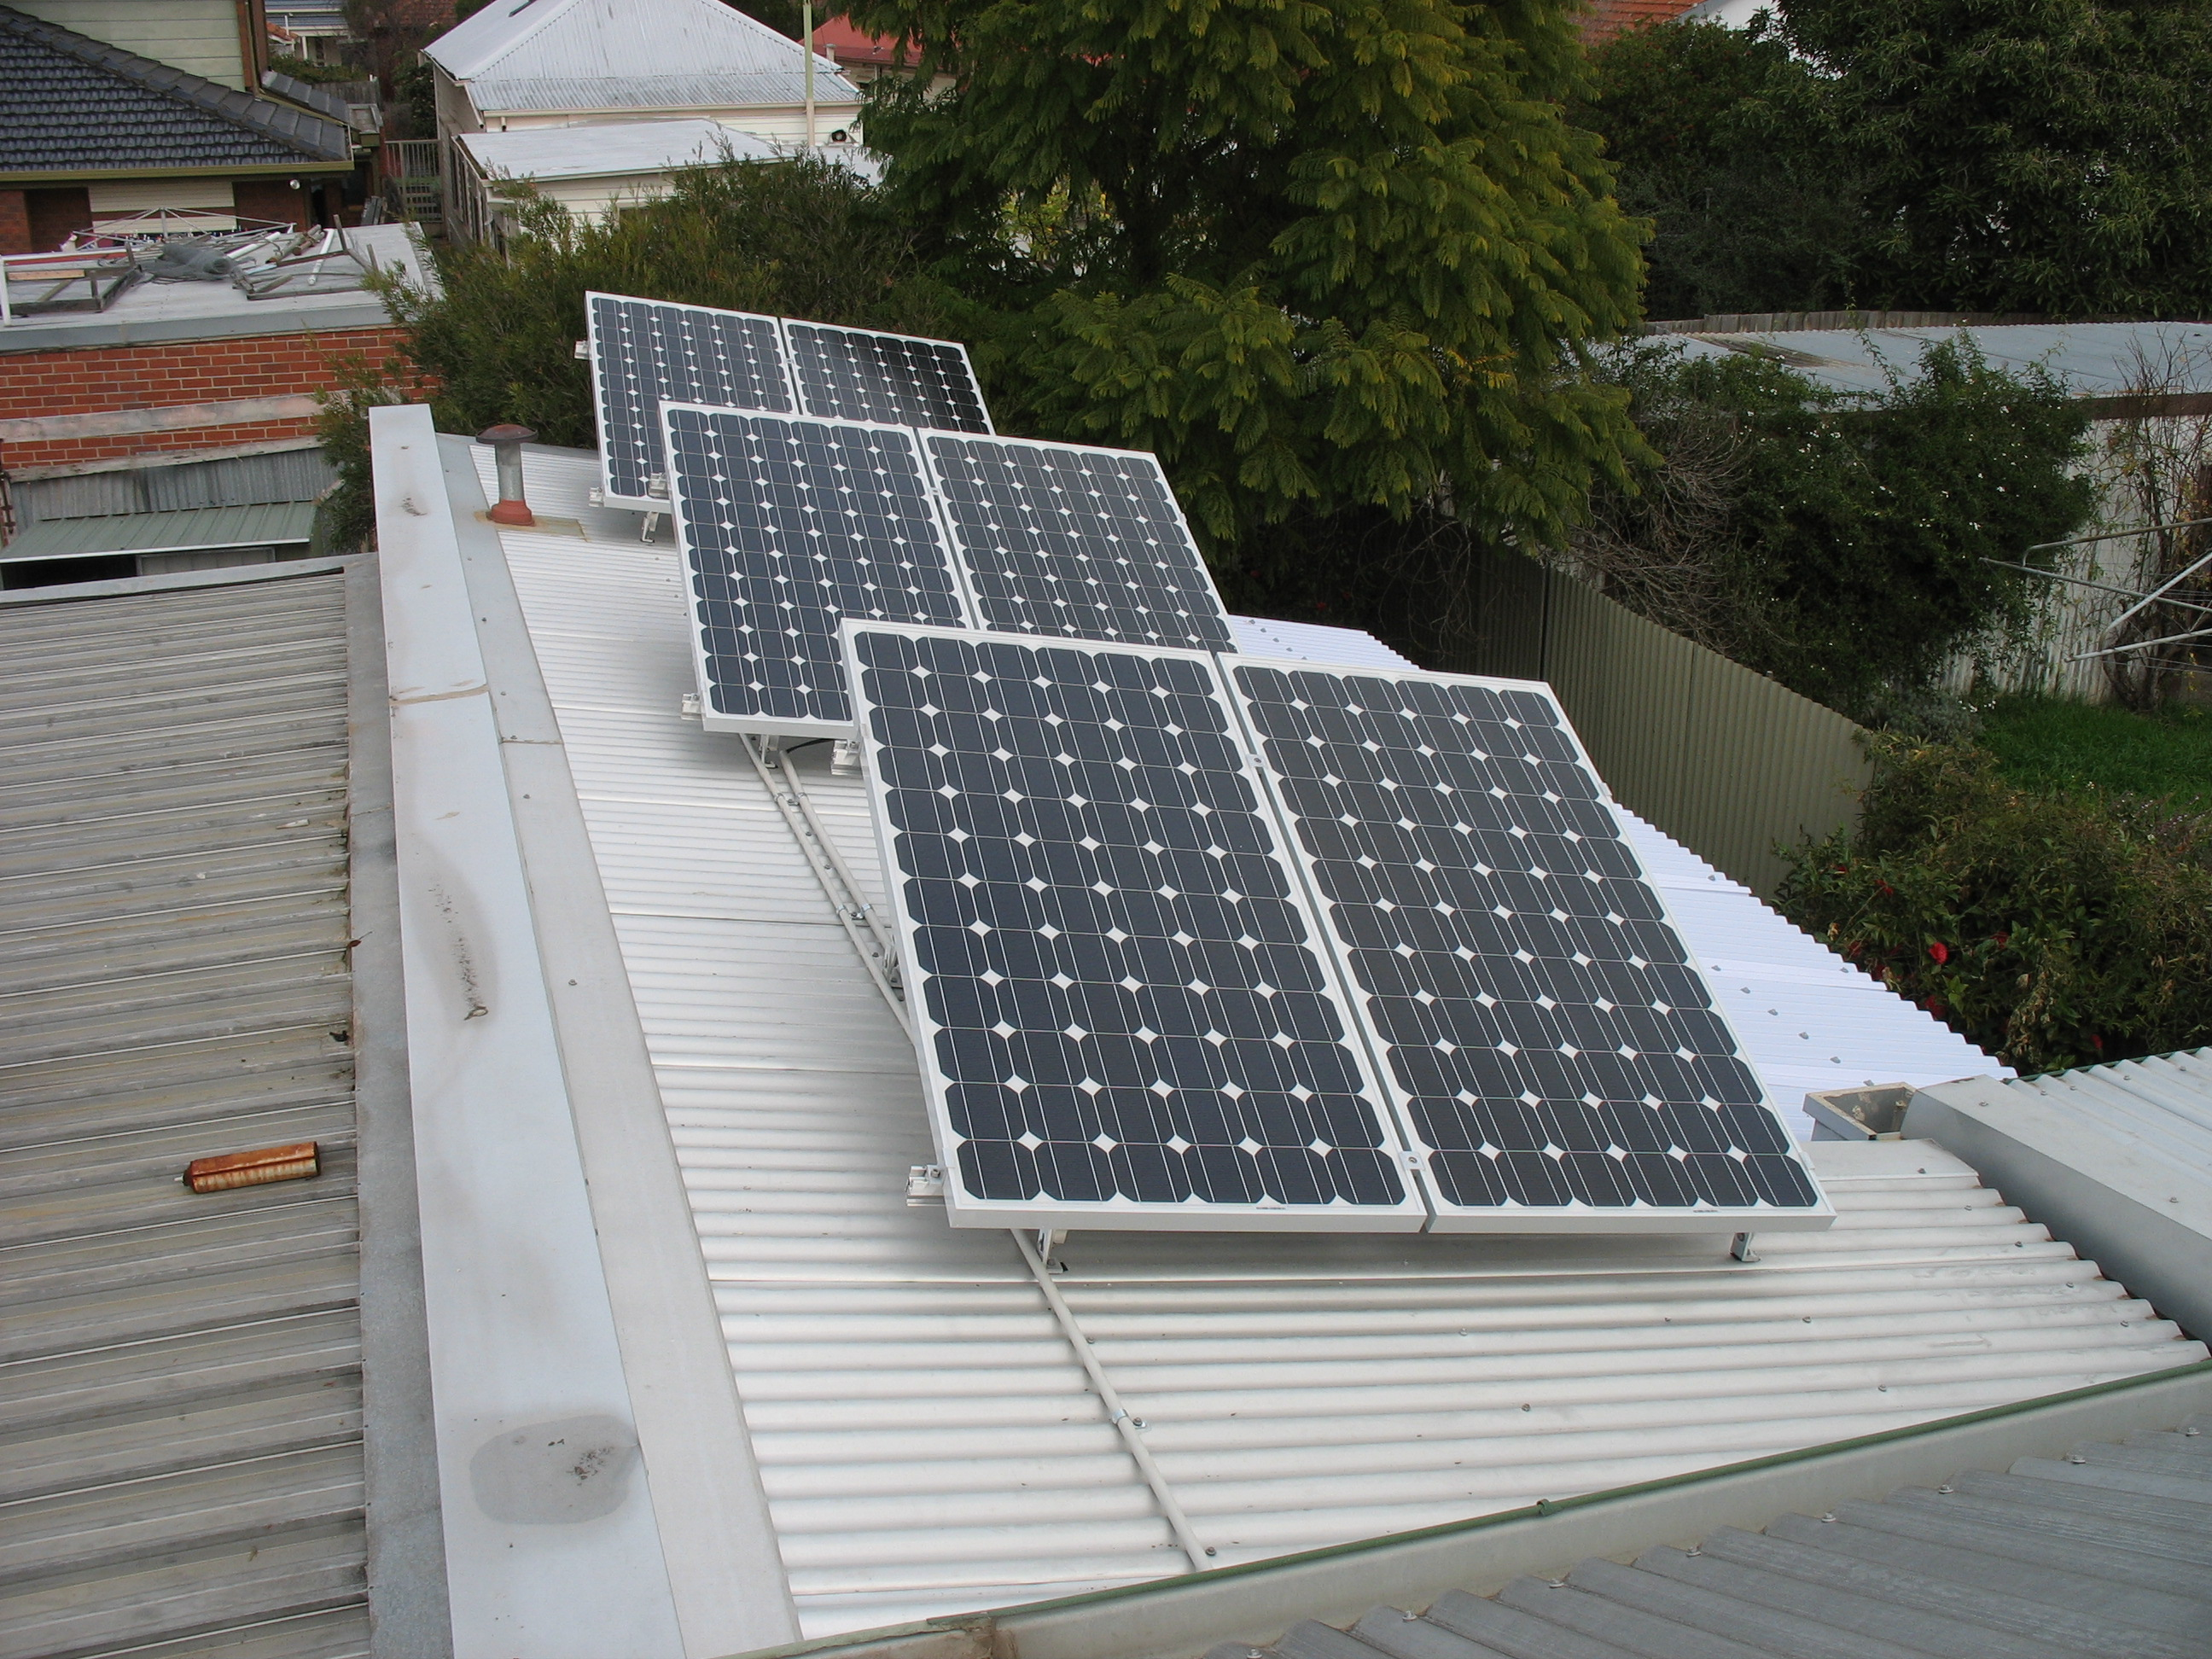 A typical 1.5kw solar system from 2009 with SMA SunnyBoy inverter